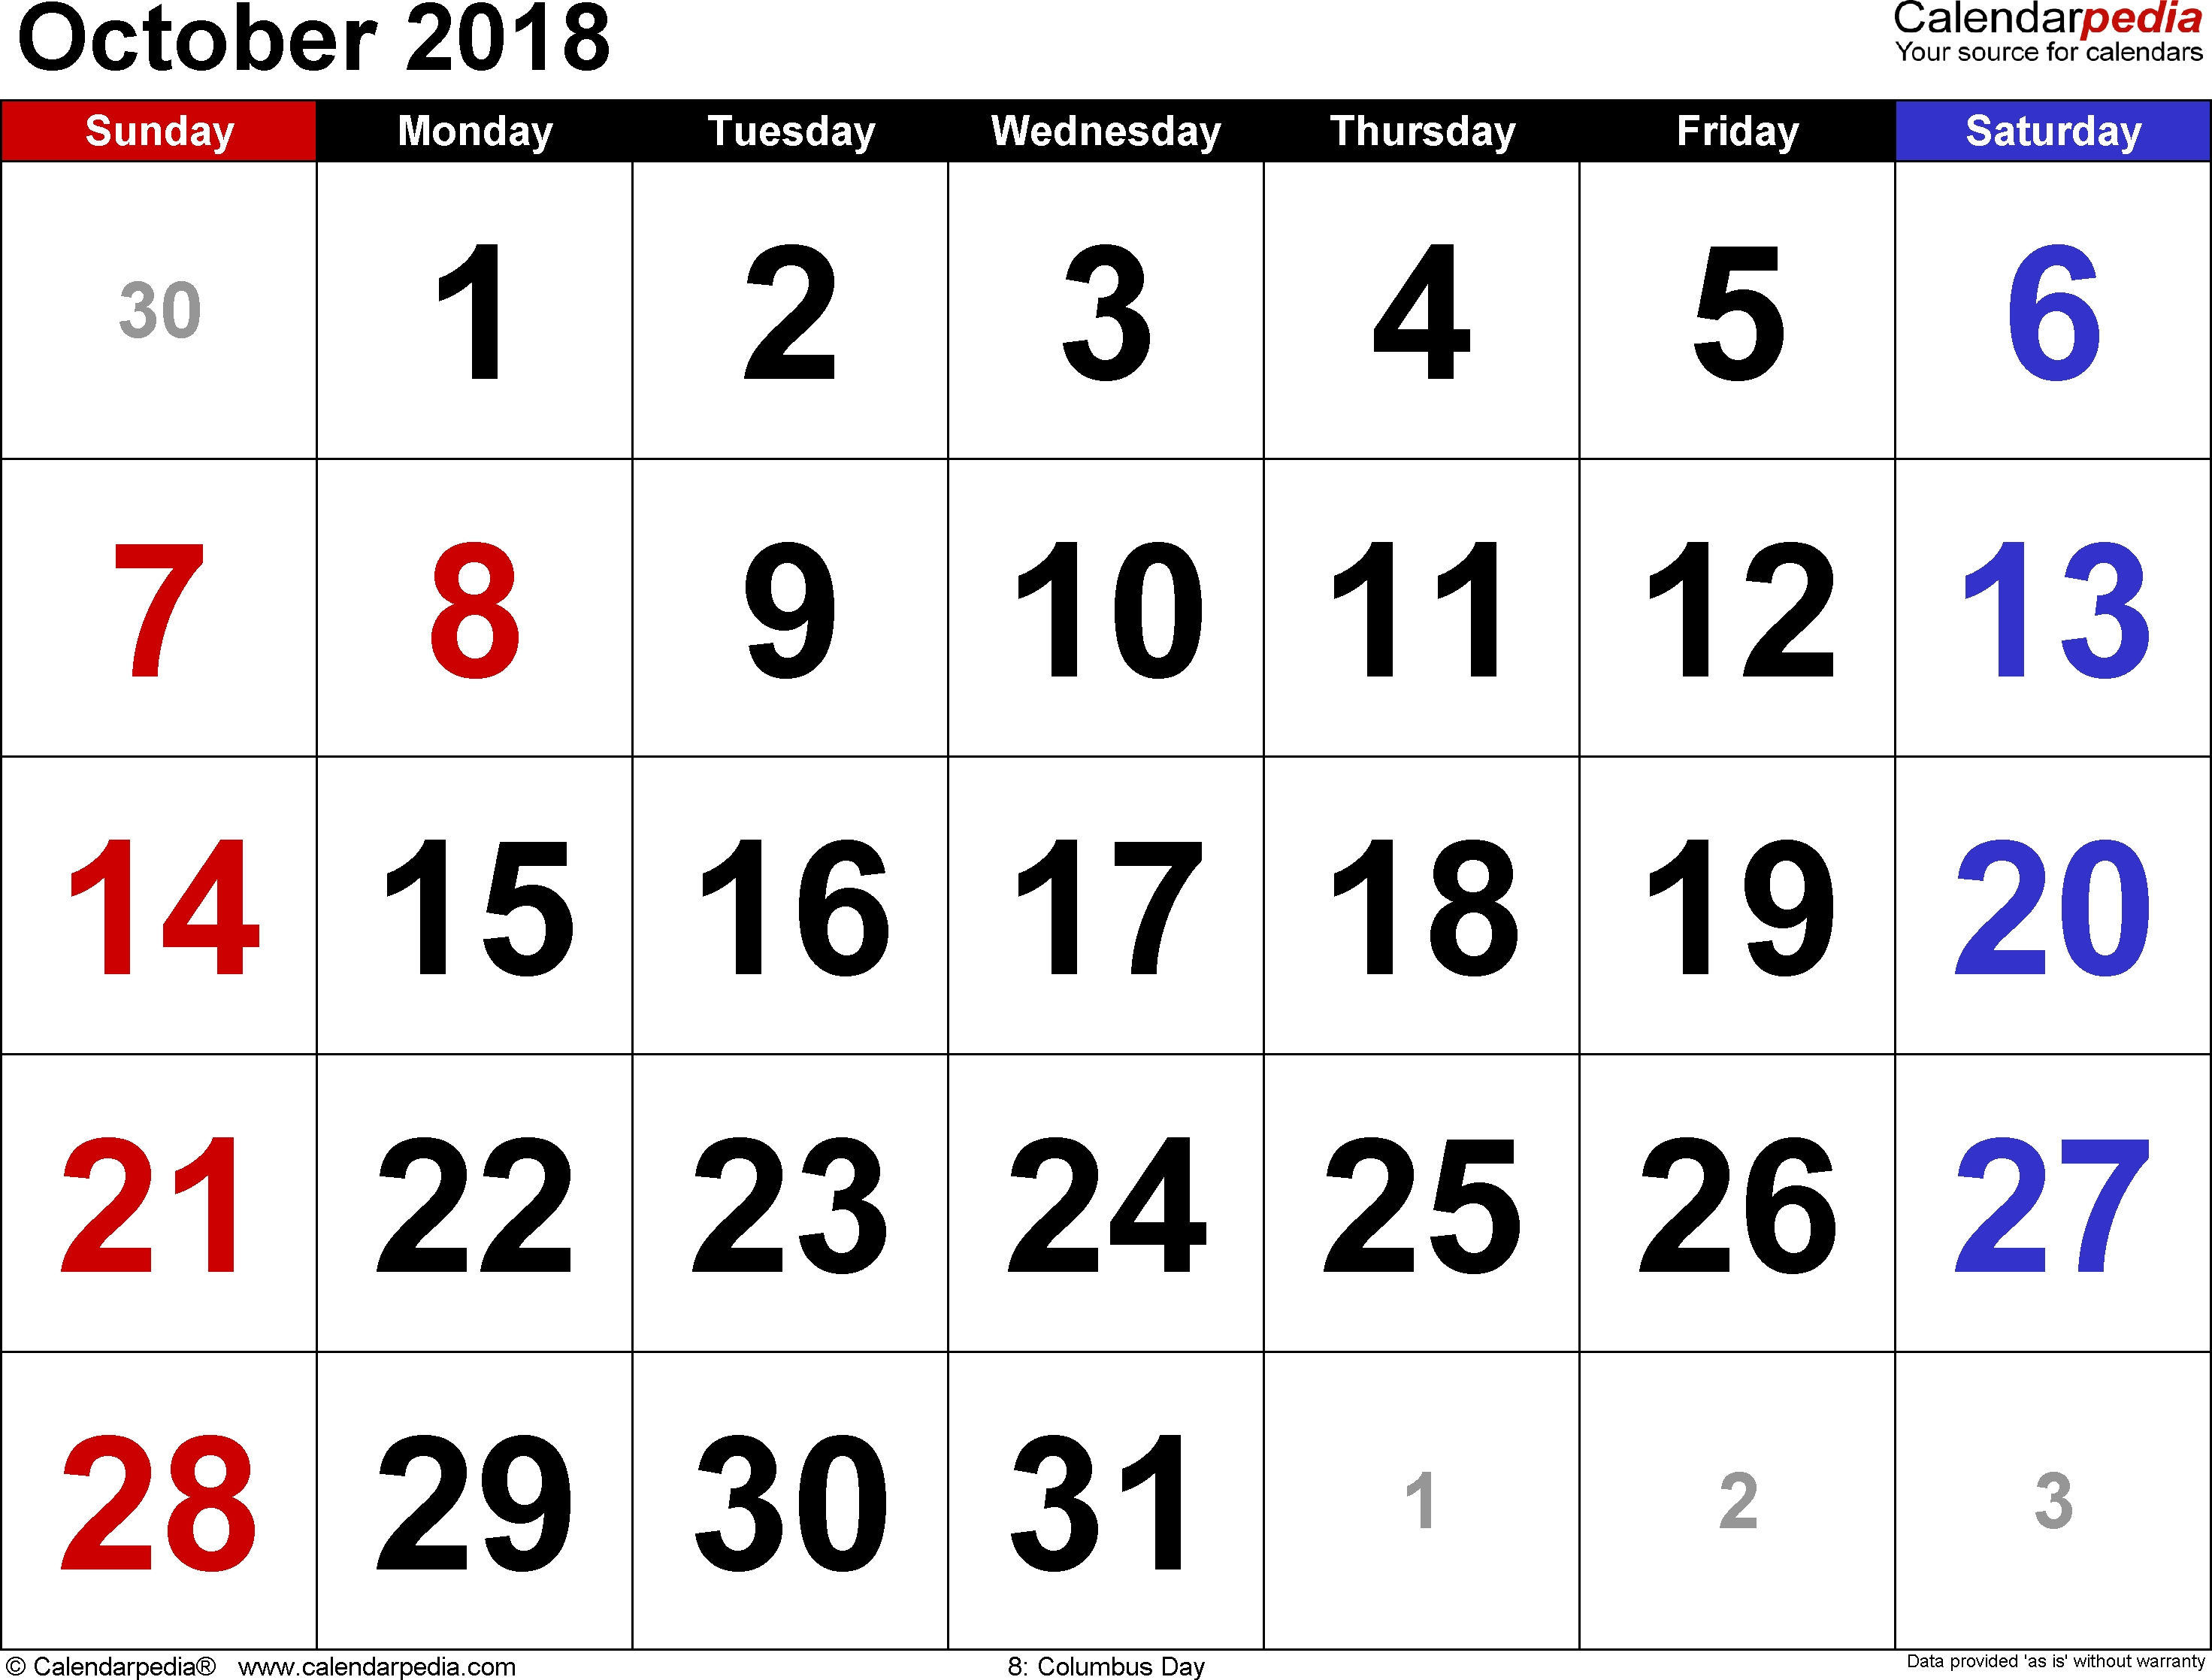 October 2018 Calendars For Word, Excel & Pdf within Monthly Calendar - Vacation Themed